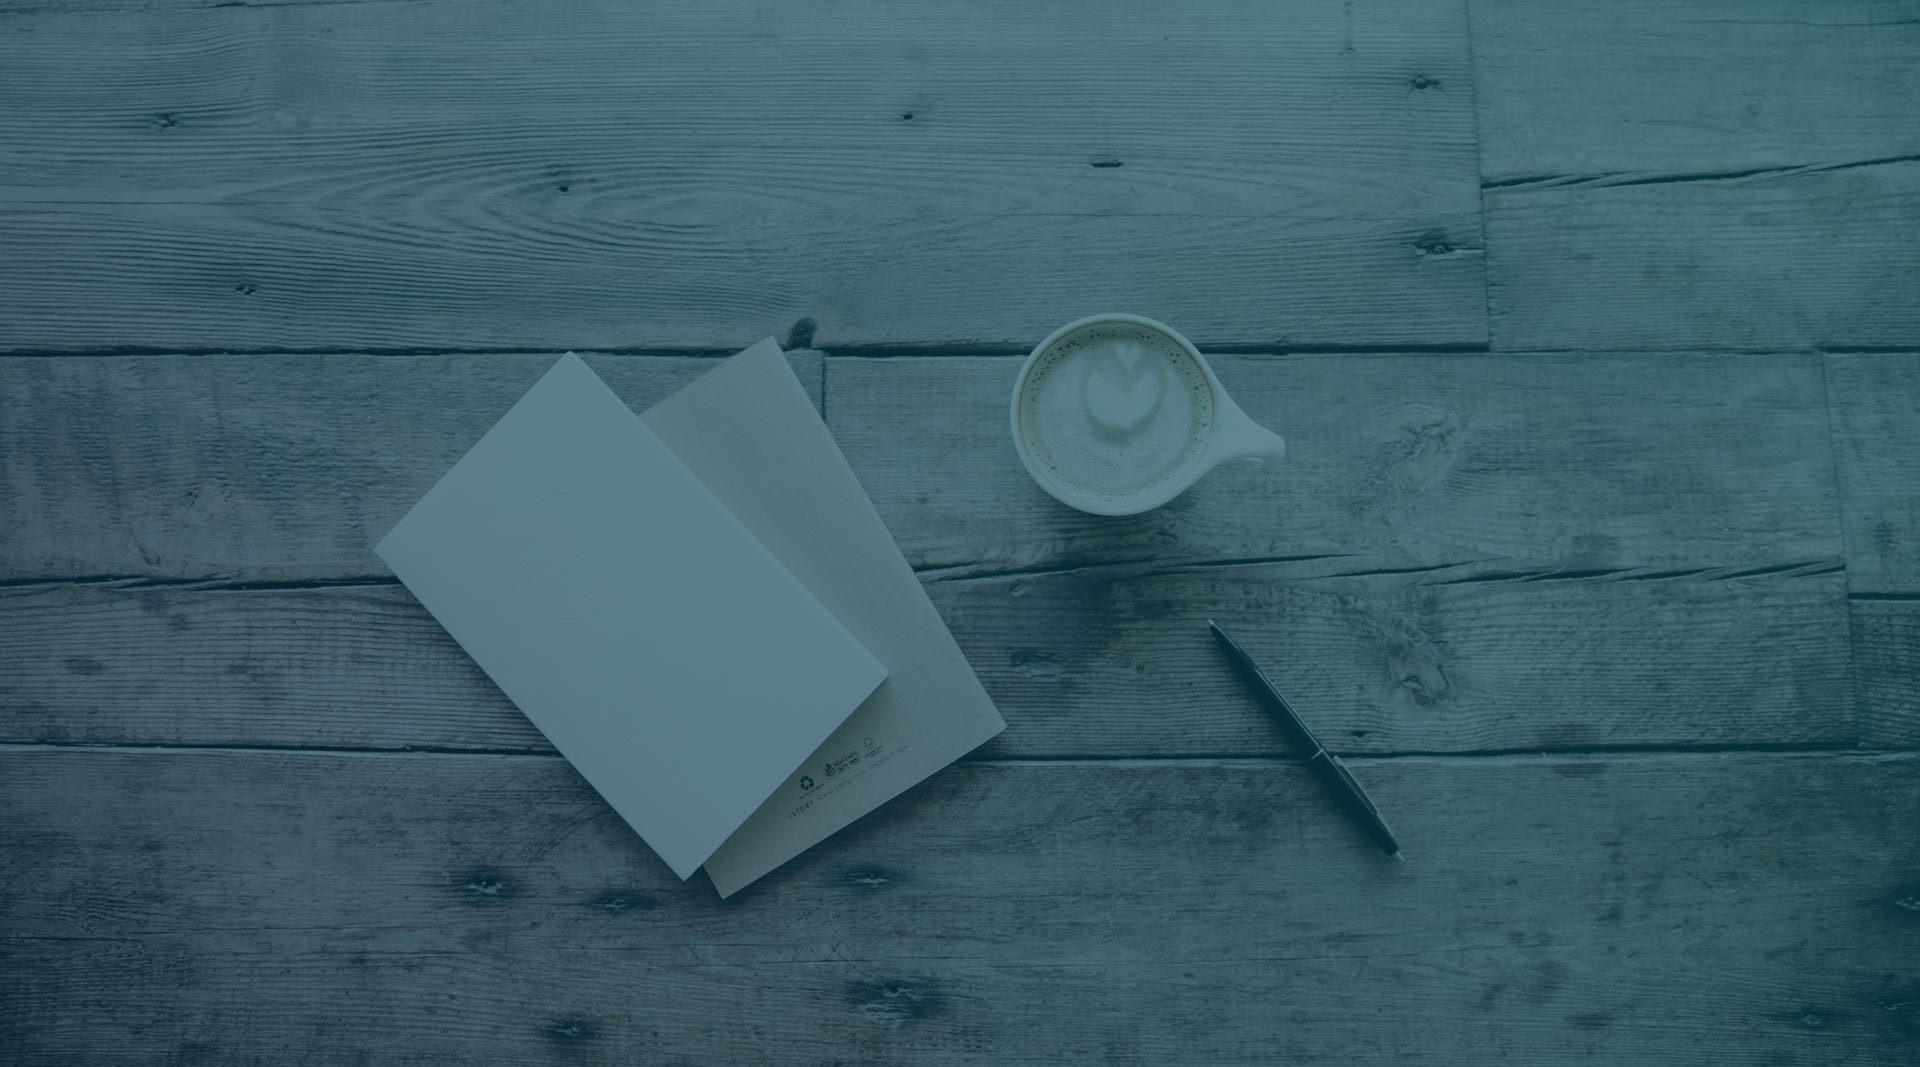 Blue-toned image of wooden table with notebook, pen and coffee.